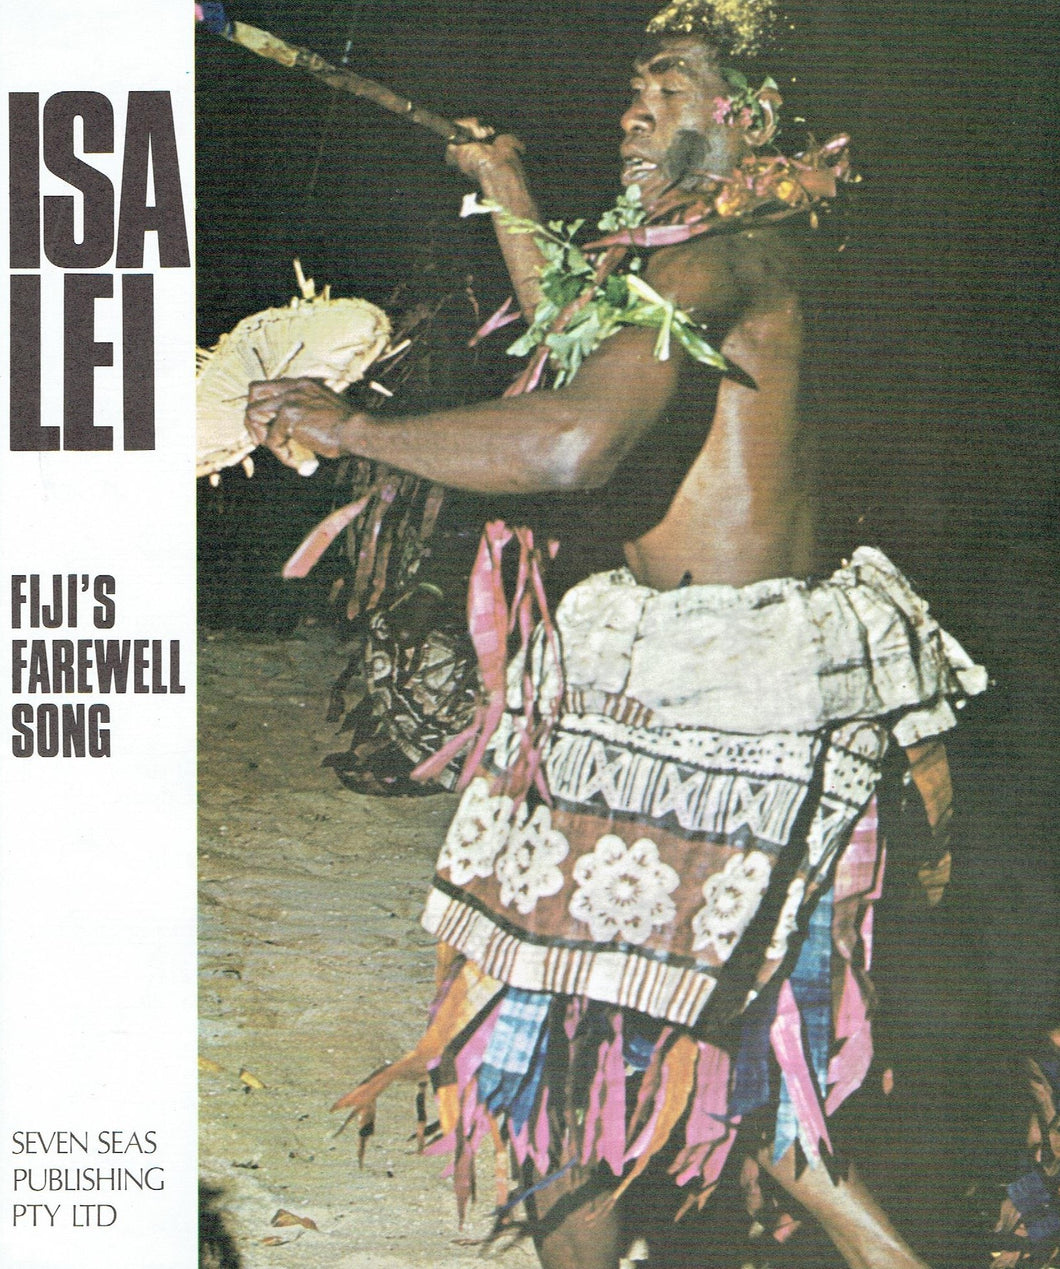 Isa Lei- Fiji's Farewell Song  (Digital Download)